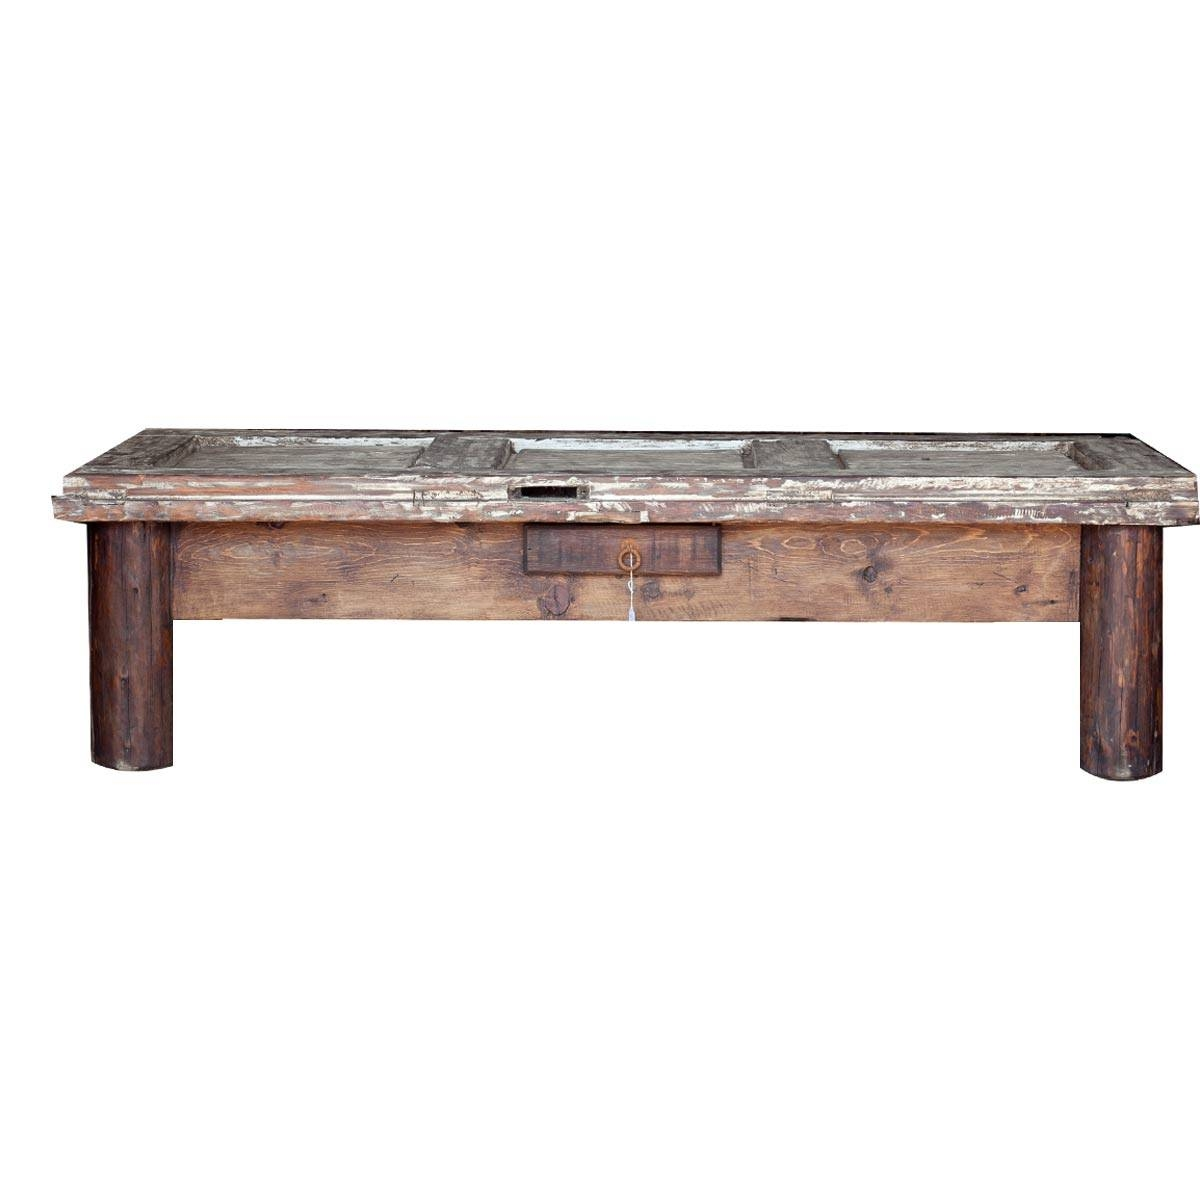 Rustic Coffee Tables For Antique Rustic Coffee Tables (View 12 of 30)